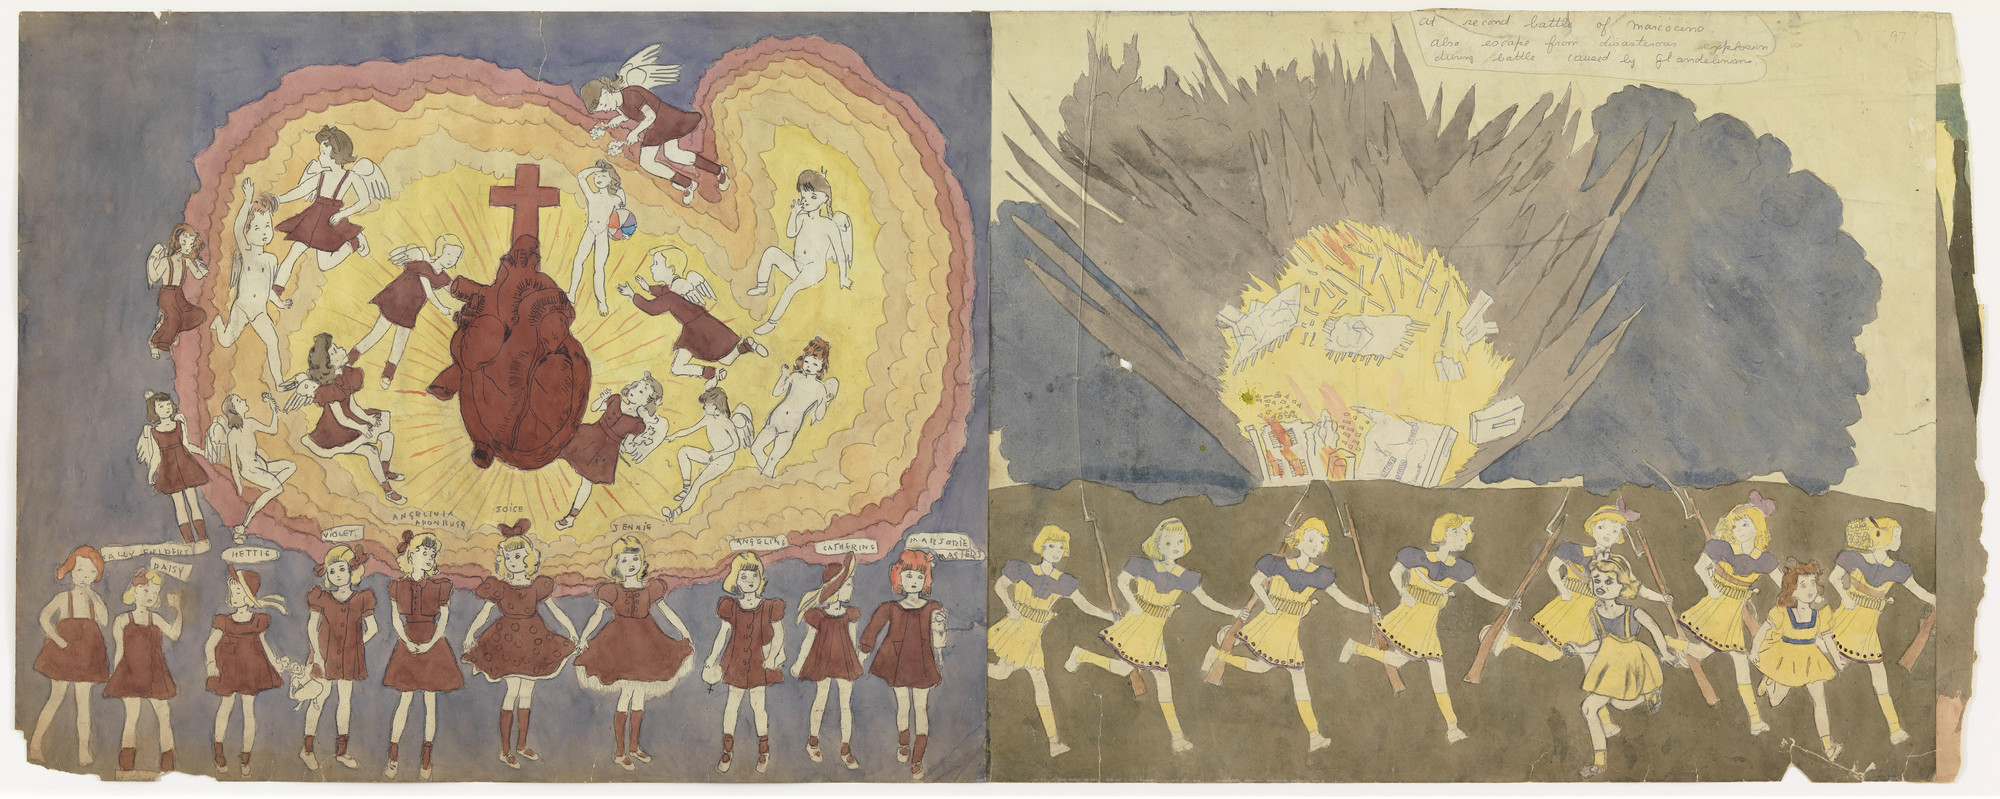 Henry Darger. a) The Vivian girls nuded like child slaves b) Untitled (Sacred Heart) and At second battle of Marcocino also escape from disasterous explosion during battle caused by glandelinians. (n.d.)